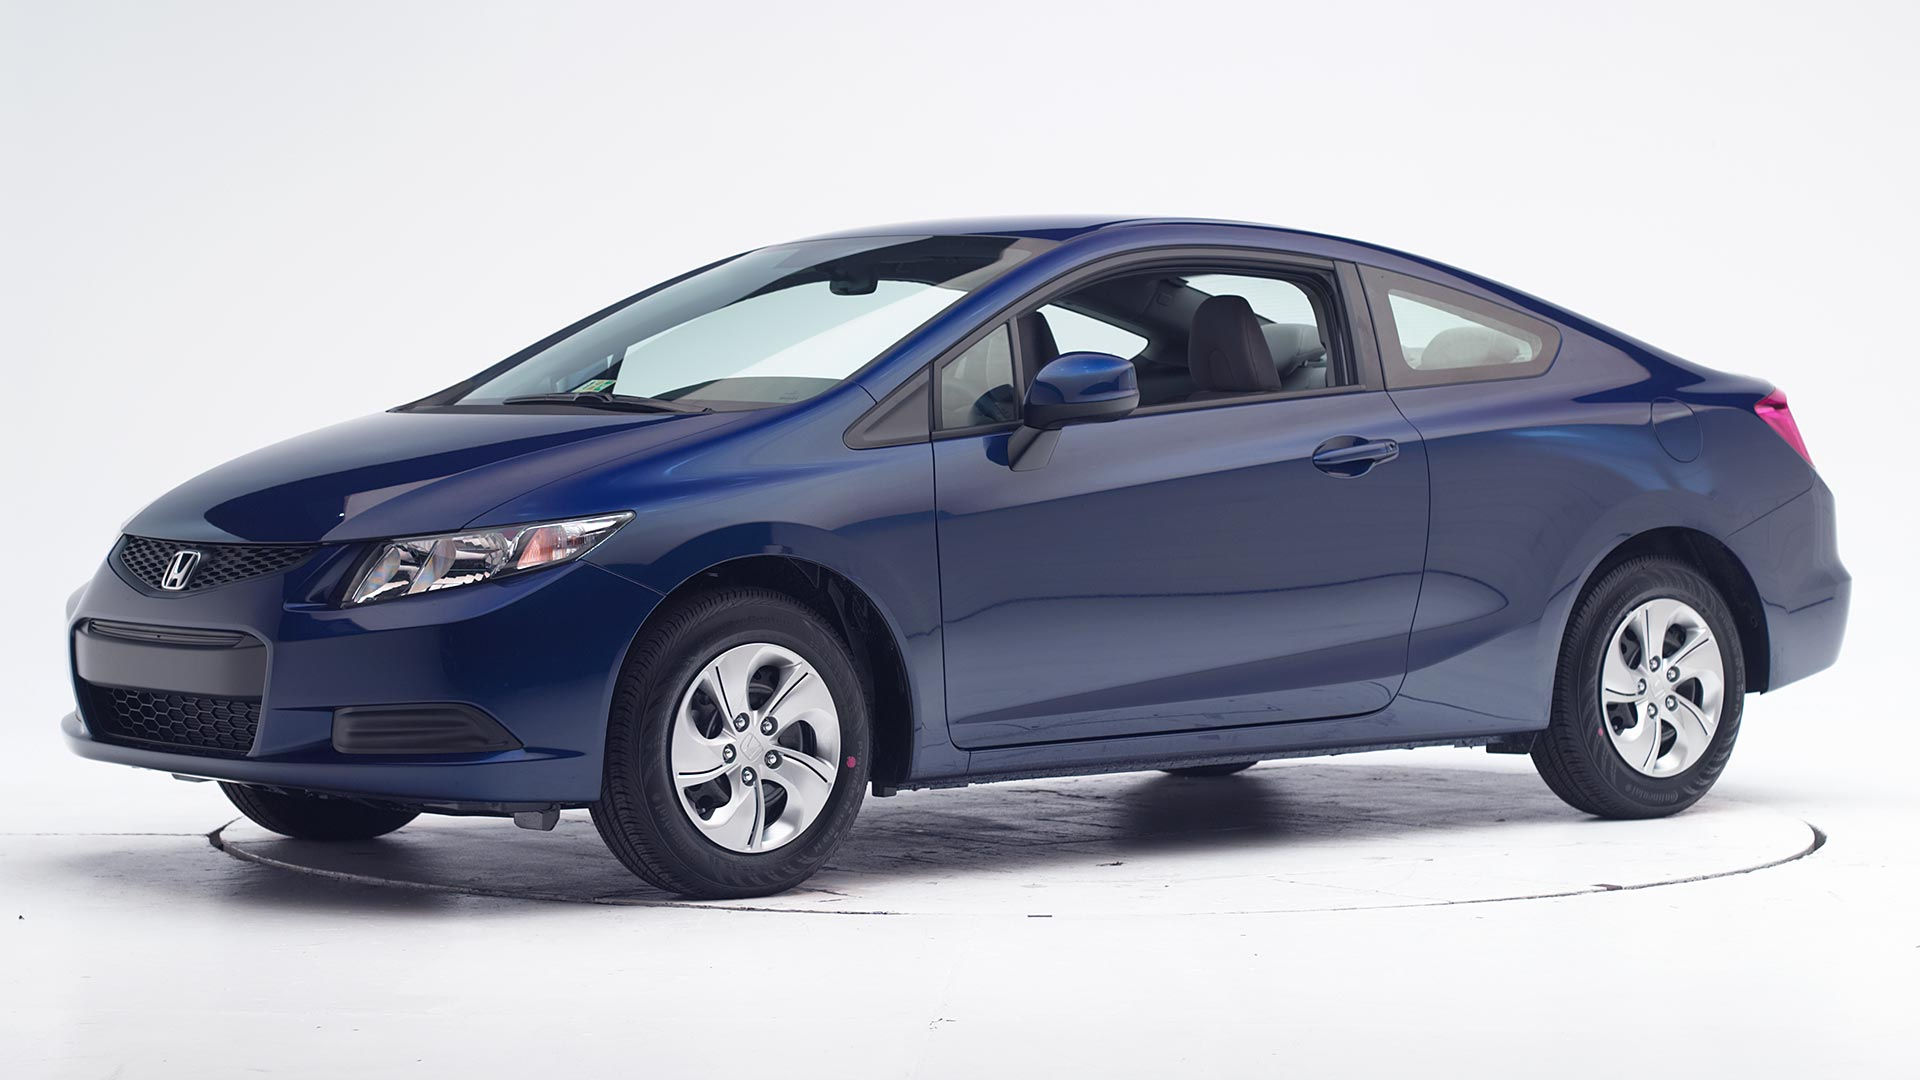 2013 Honda Civic 2-door coupe